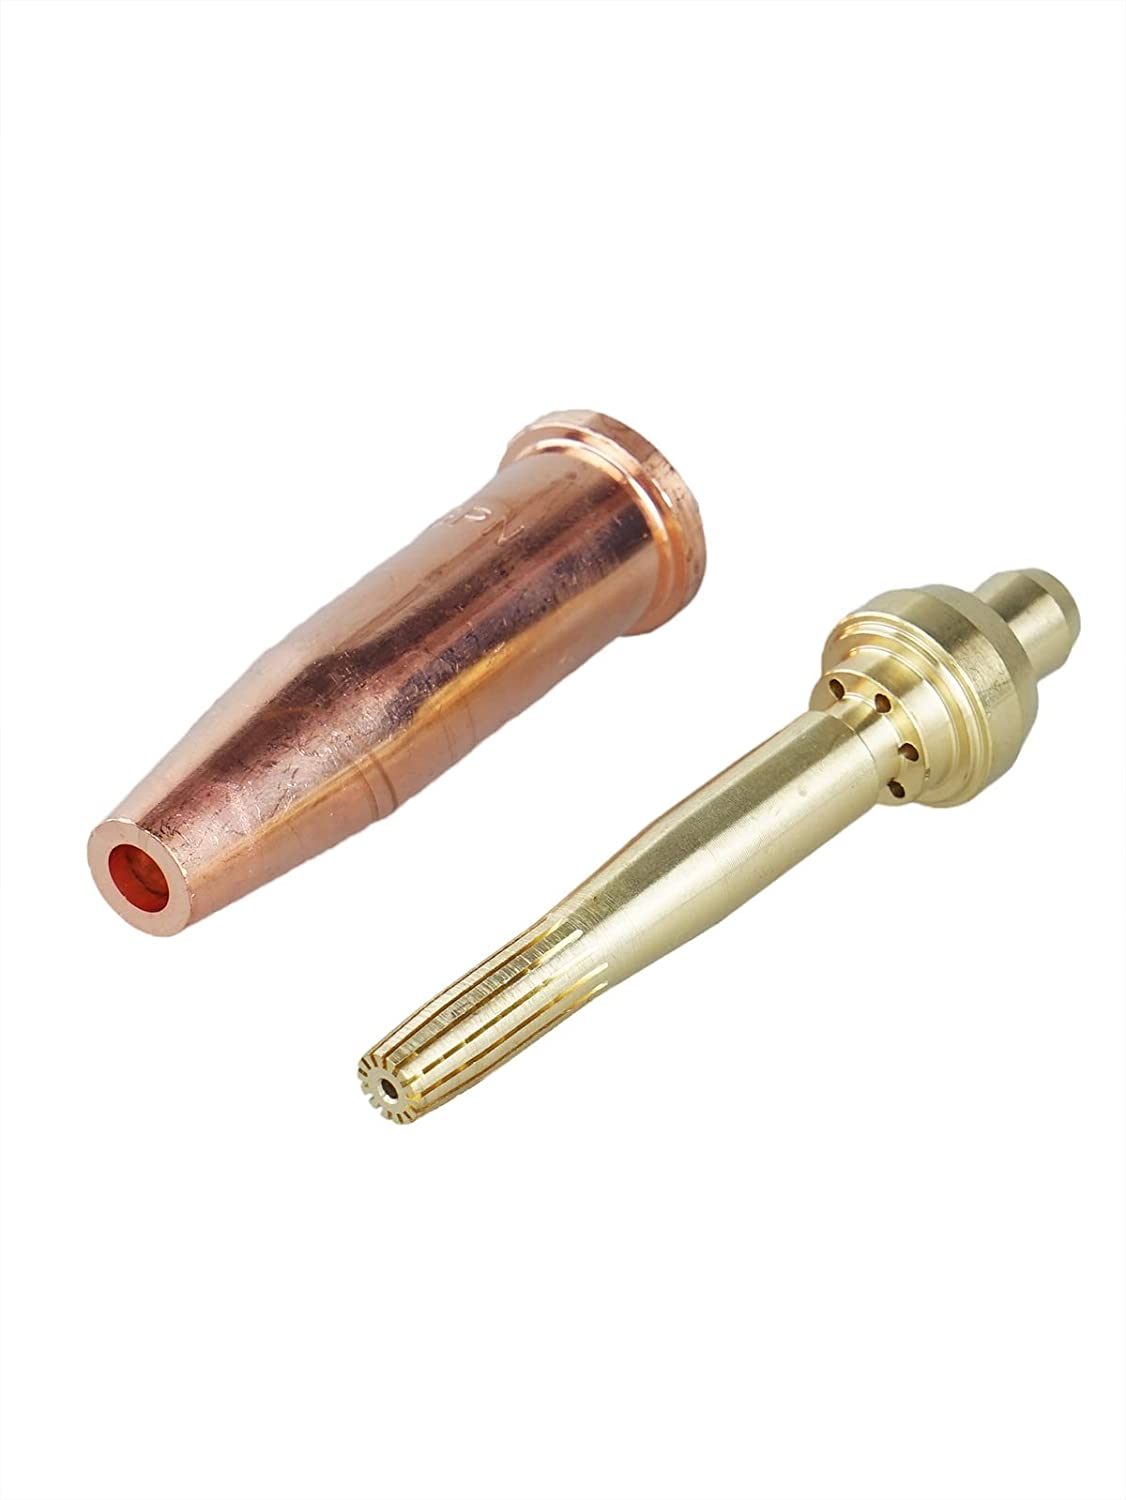 2-GPN Propane Cutting Torch Tips Victor Style,Pack of 2